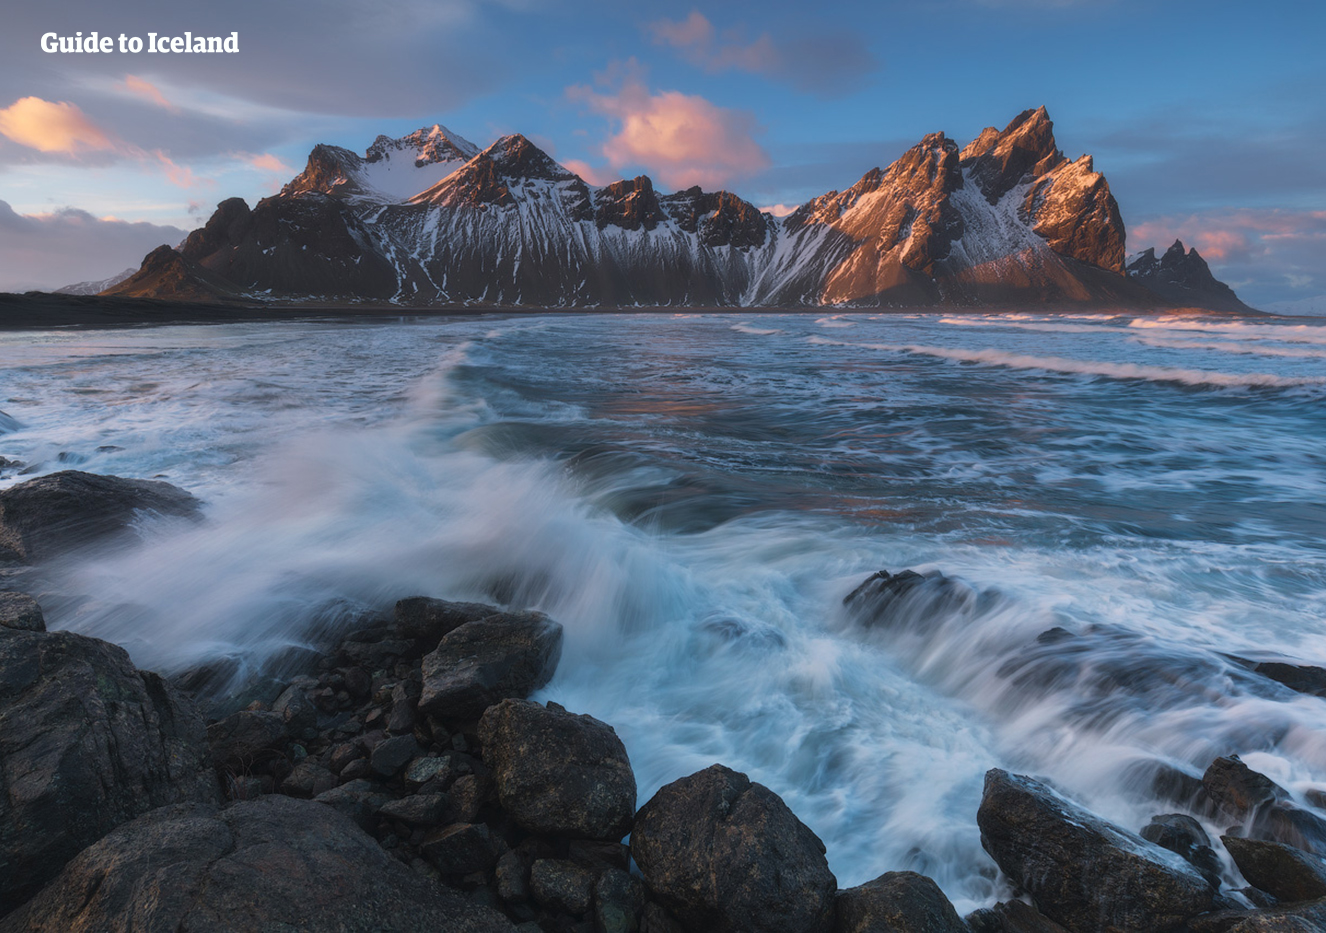 Mt. Vestrahorn on the Stokksnes Peninsula looks dazzling in winter's dress.